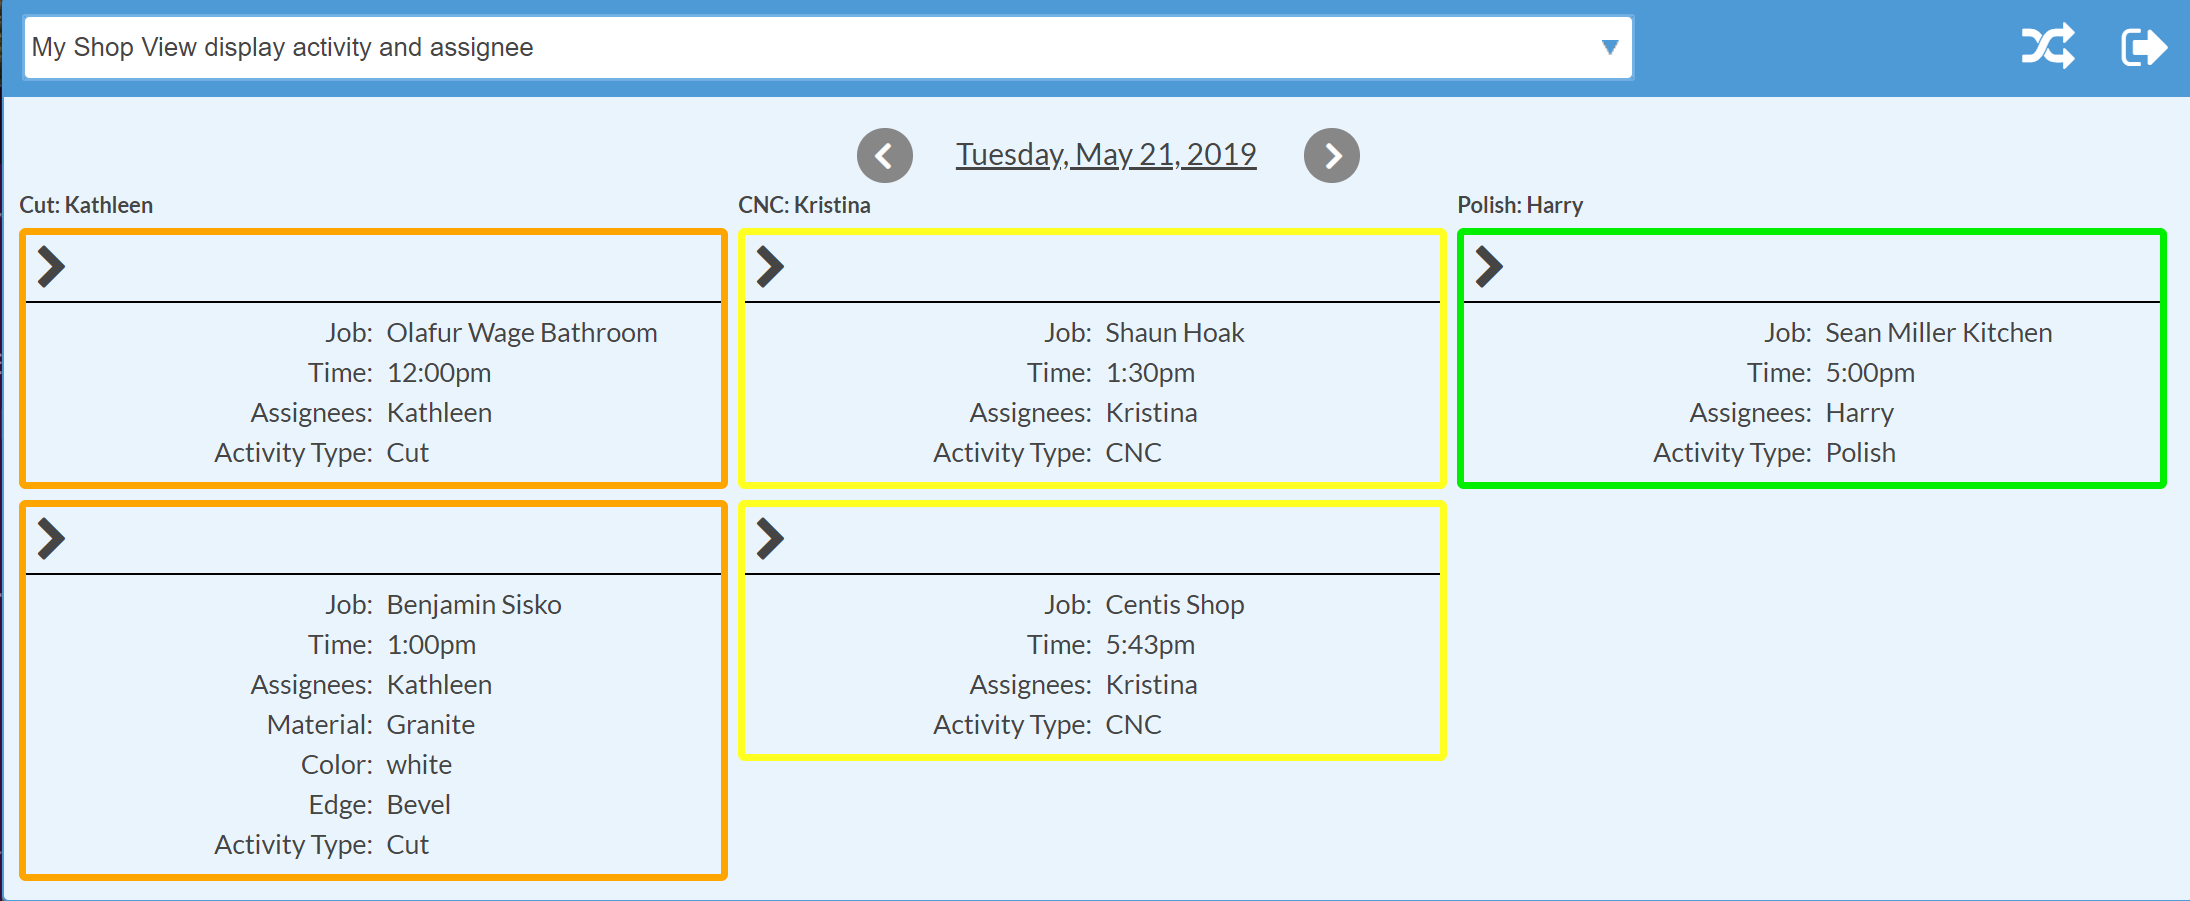 Shop View: Display Columns by Activity Type and Assignee